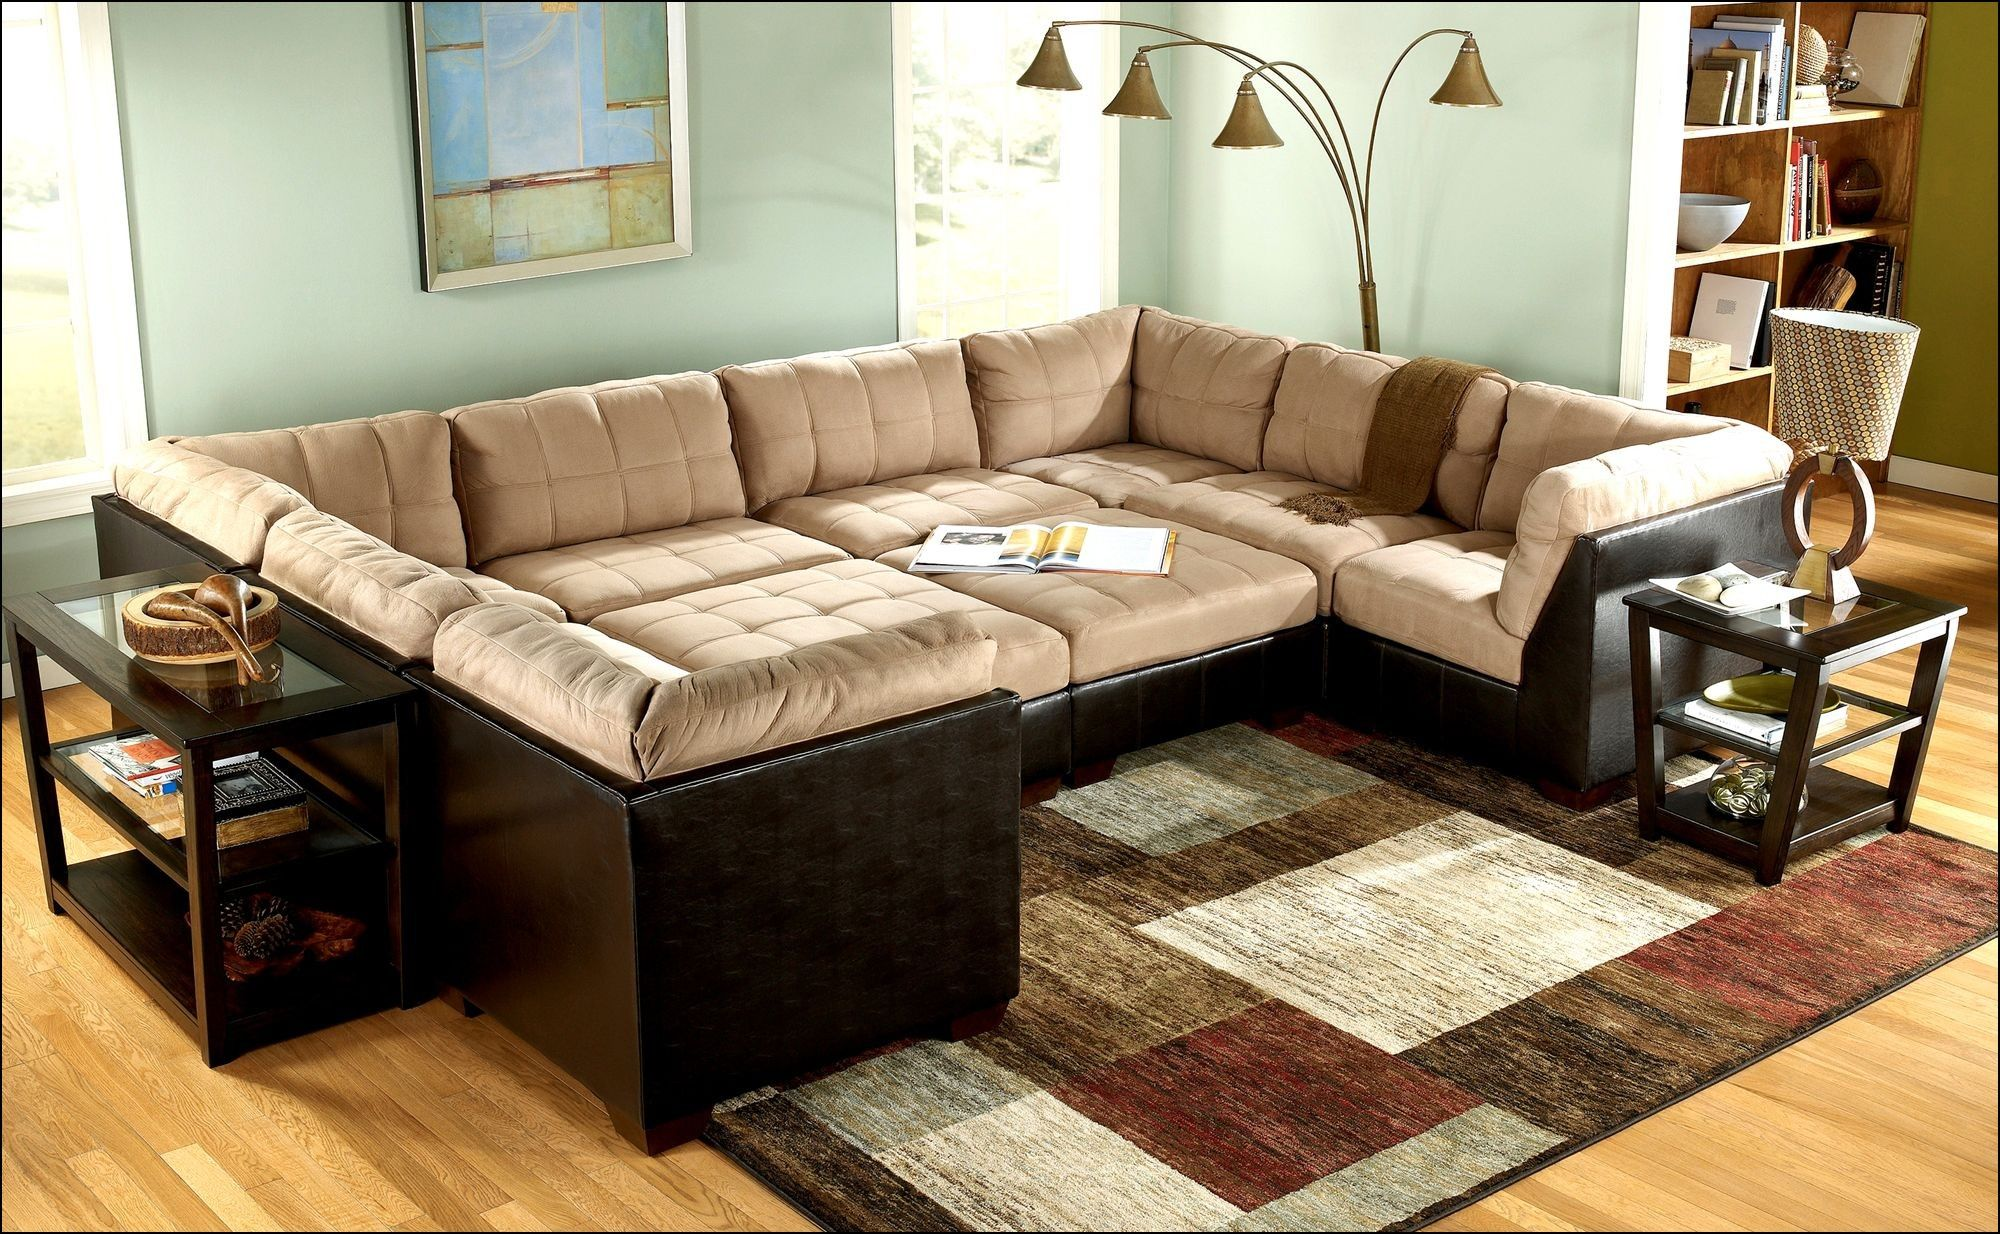 Pit Couches For Sale Affordable Living Room Set Affordable